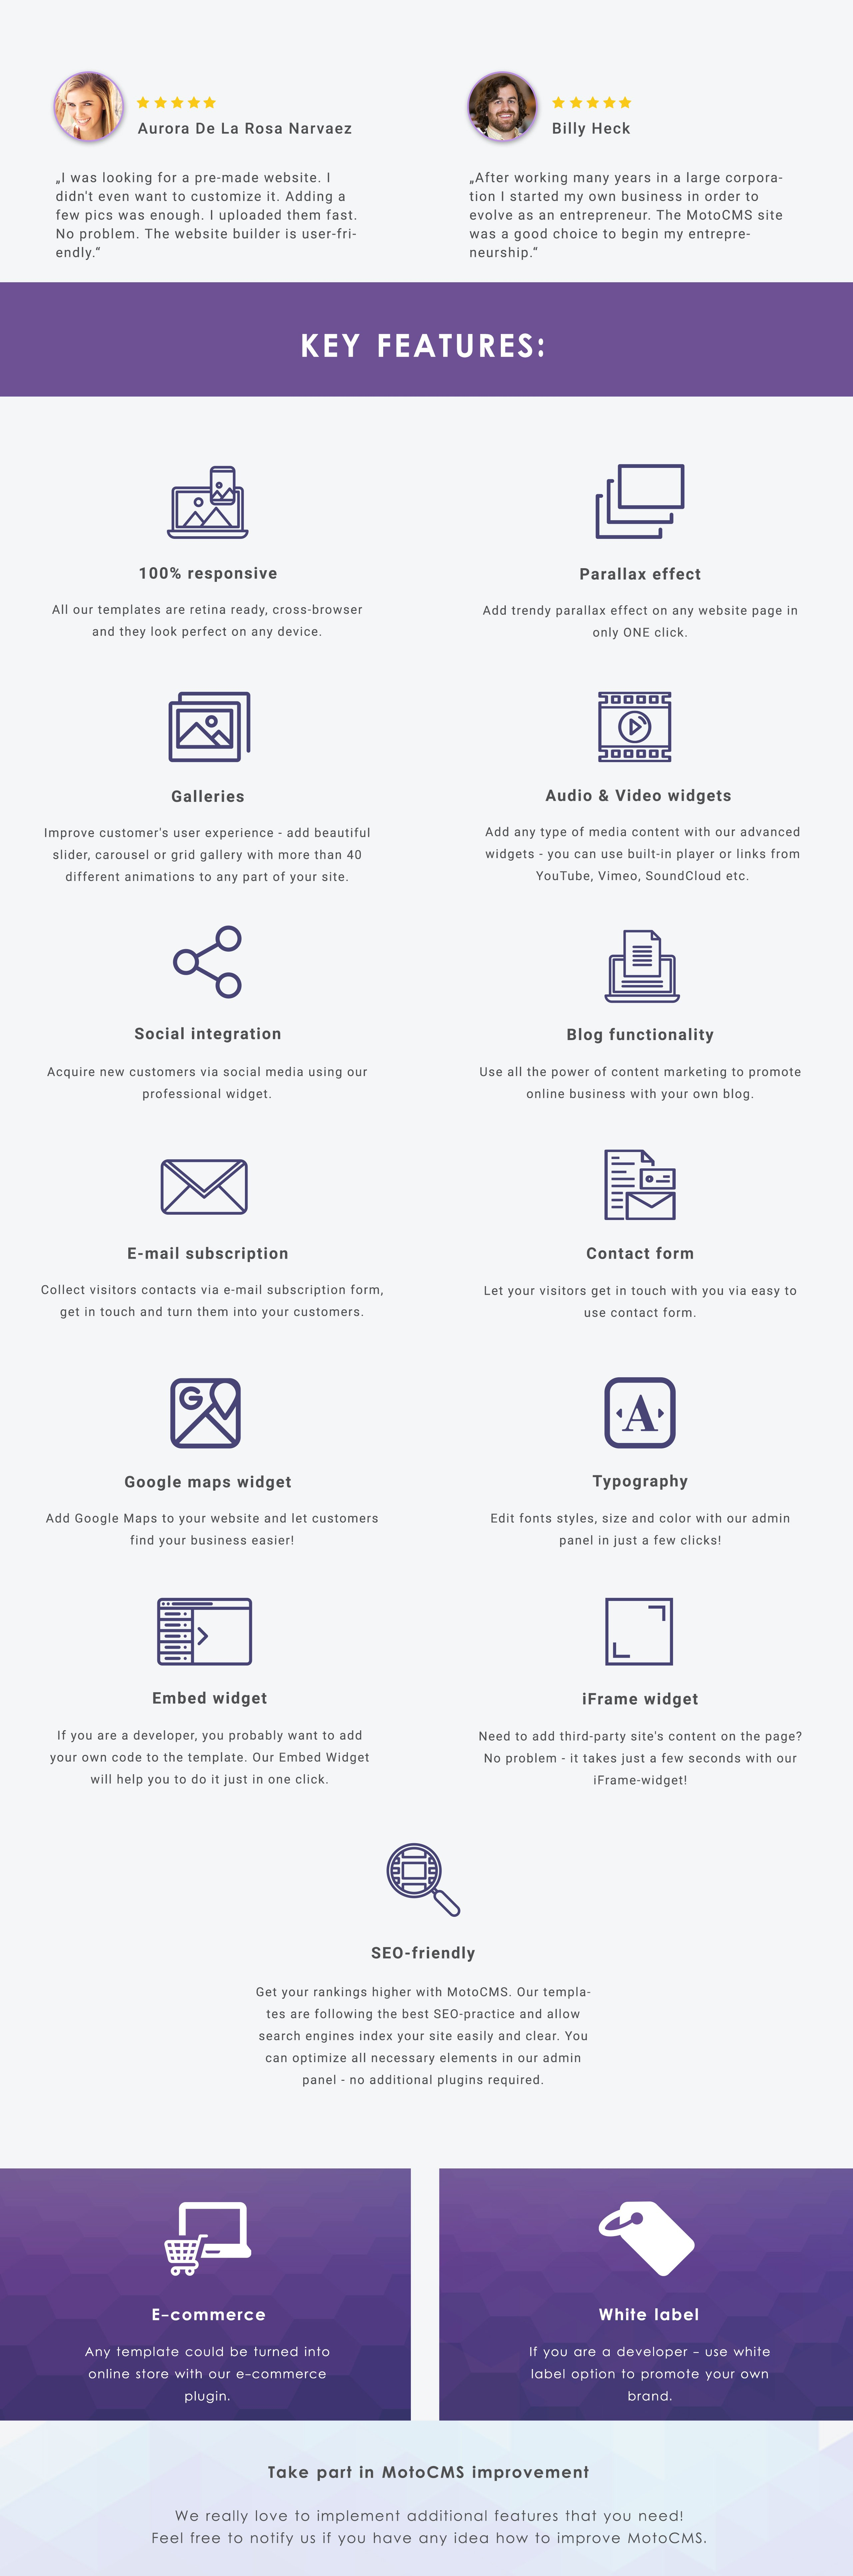 MailJet - Email Moto CMS 3 Template